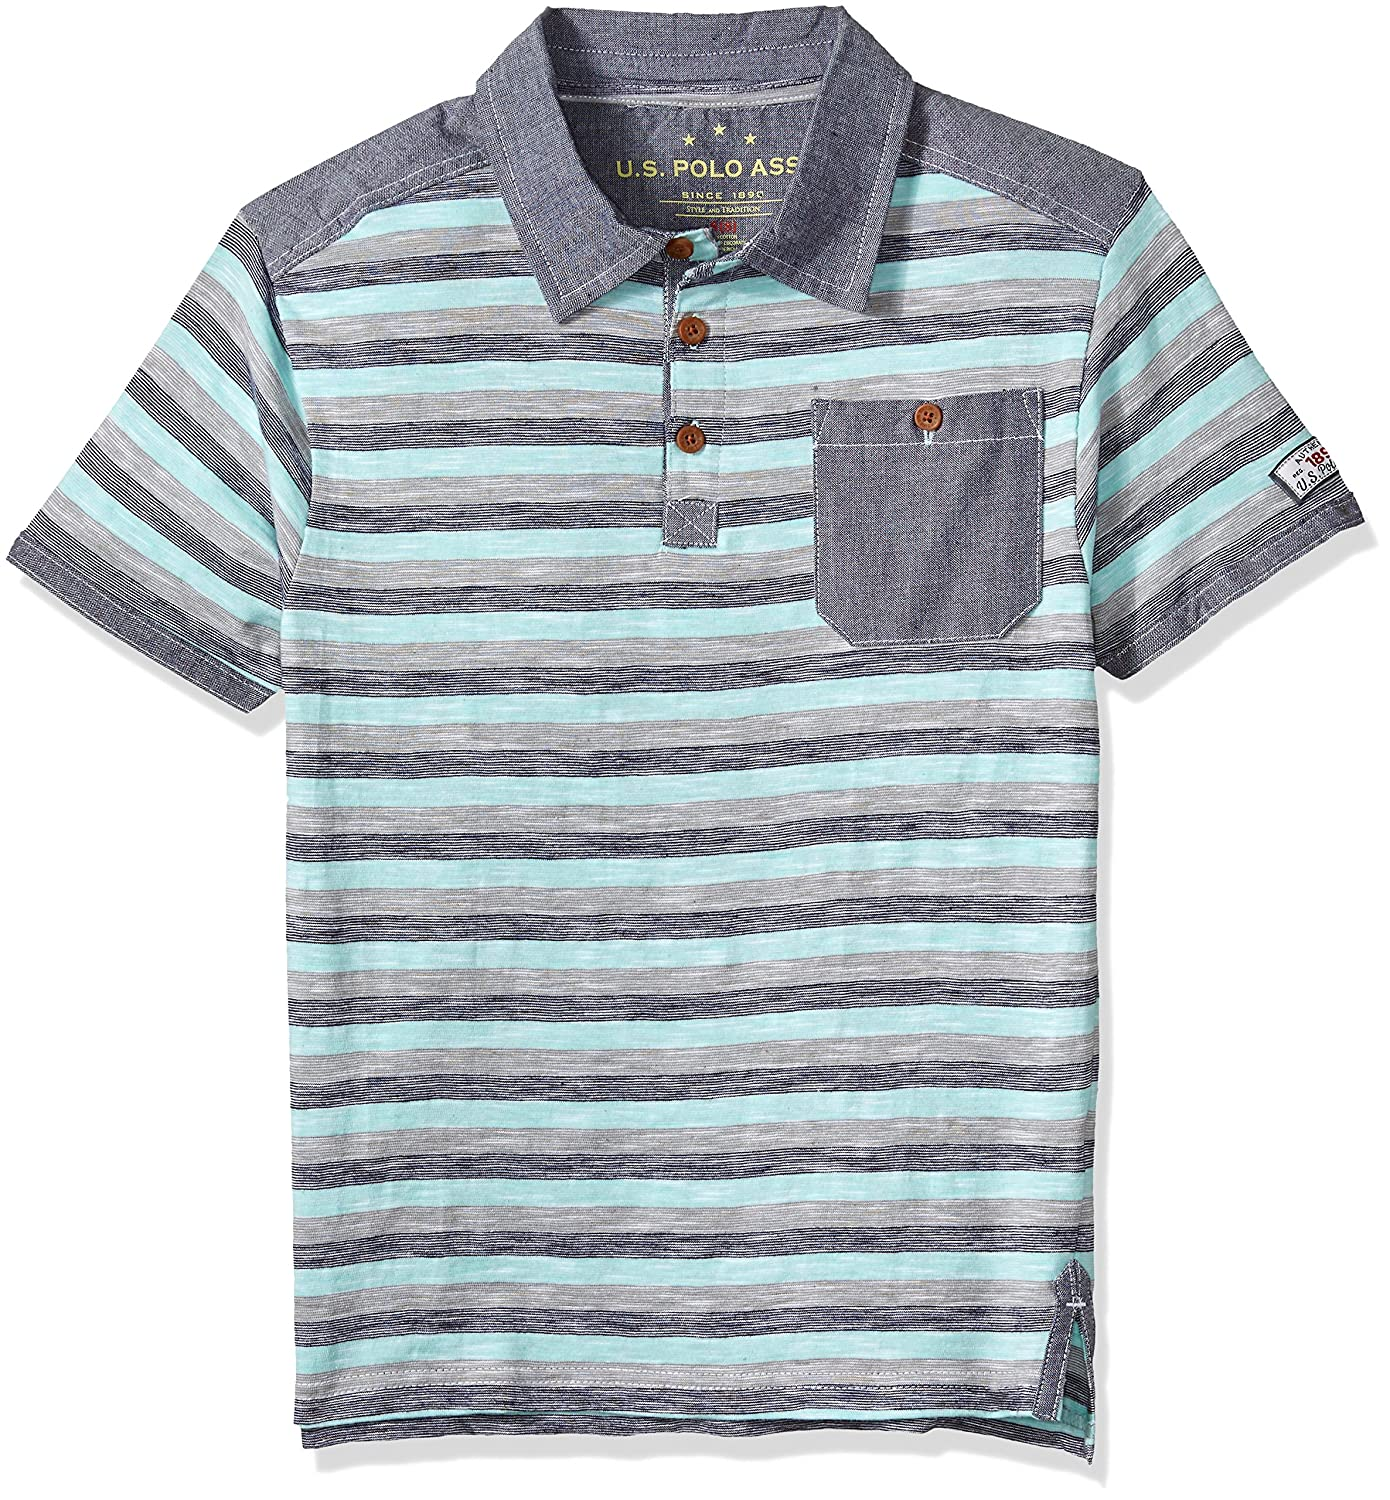 U.S. Polo Assn. Boys' Short Sleeve Striped Shirt